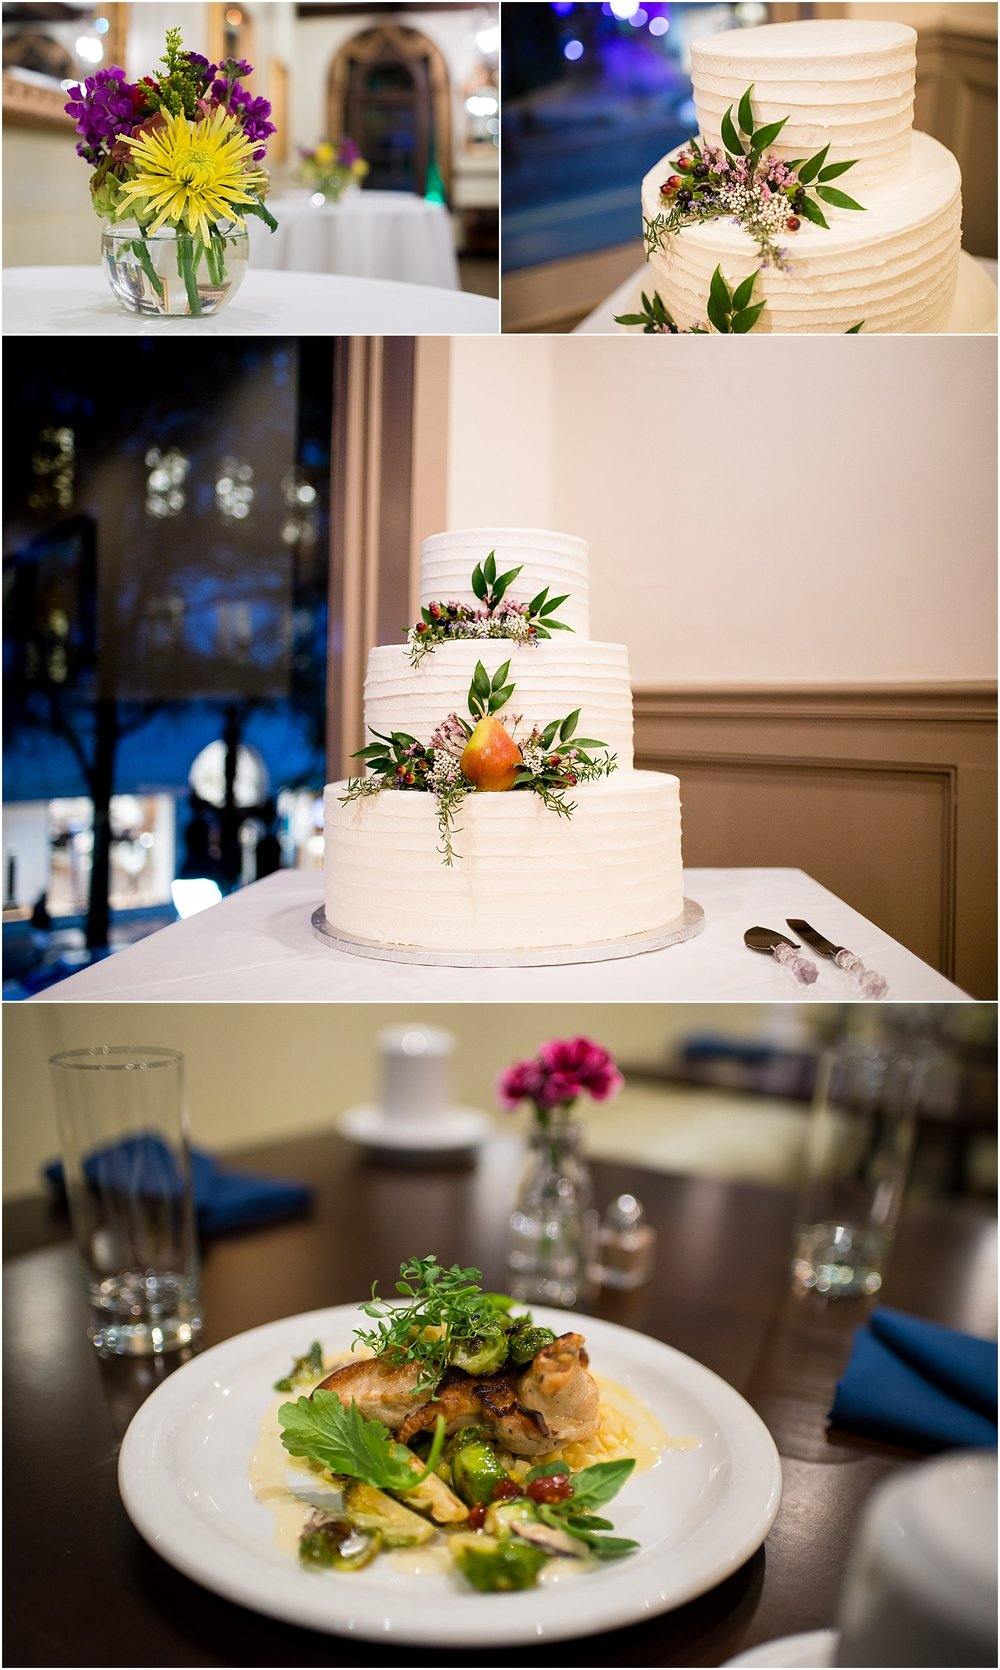 The_Asbury_Catering_Classic_Wedding_Cake_Dunhill_Hotel